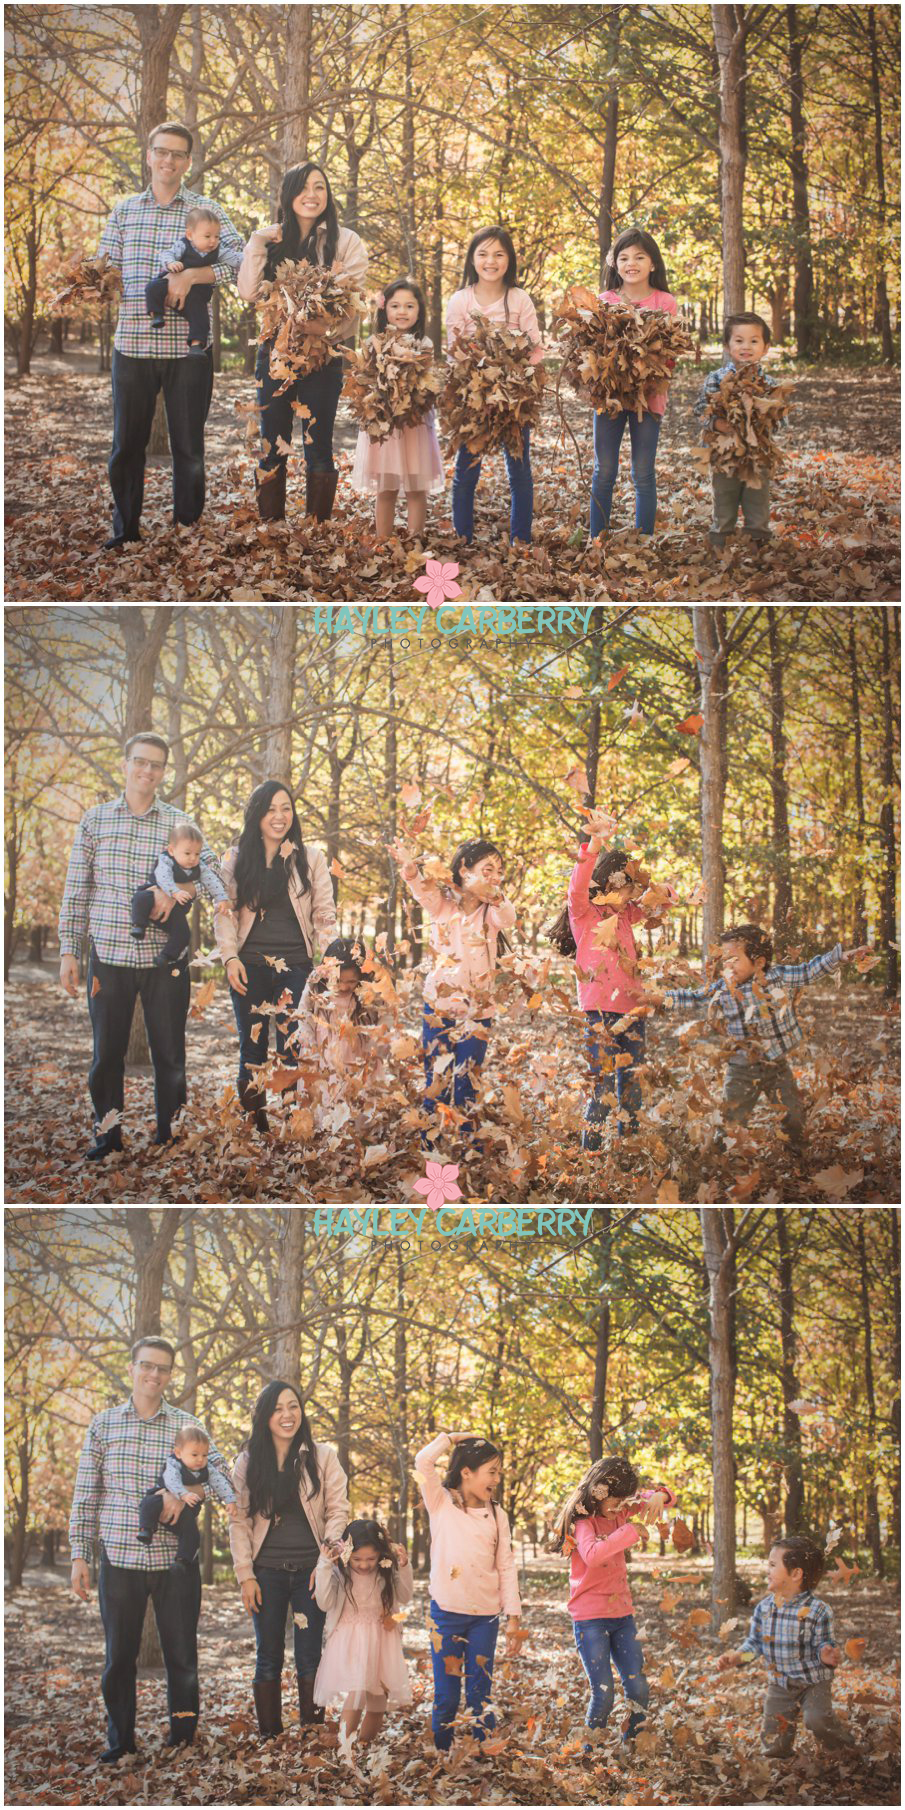 ChildrenfamilyphotographerCanberra-9_WEBcopy.jpg